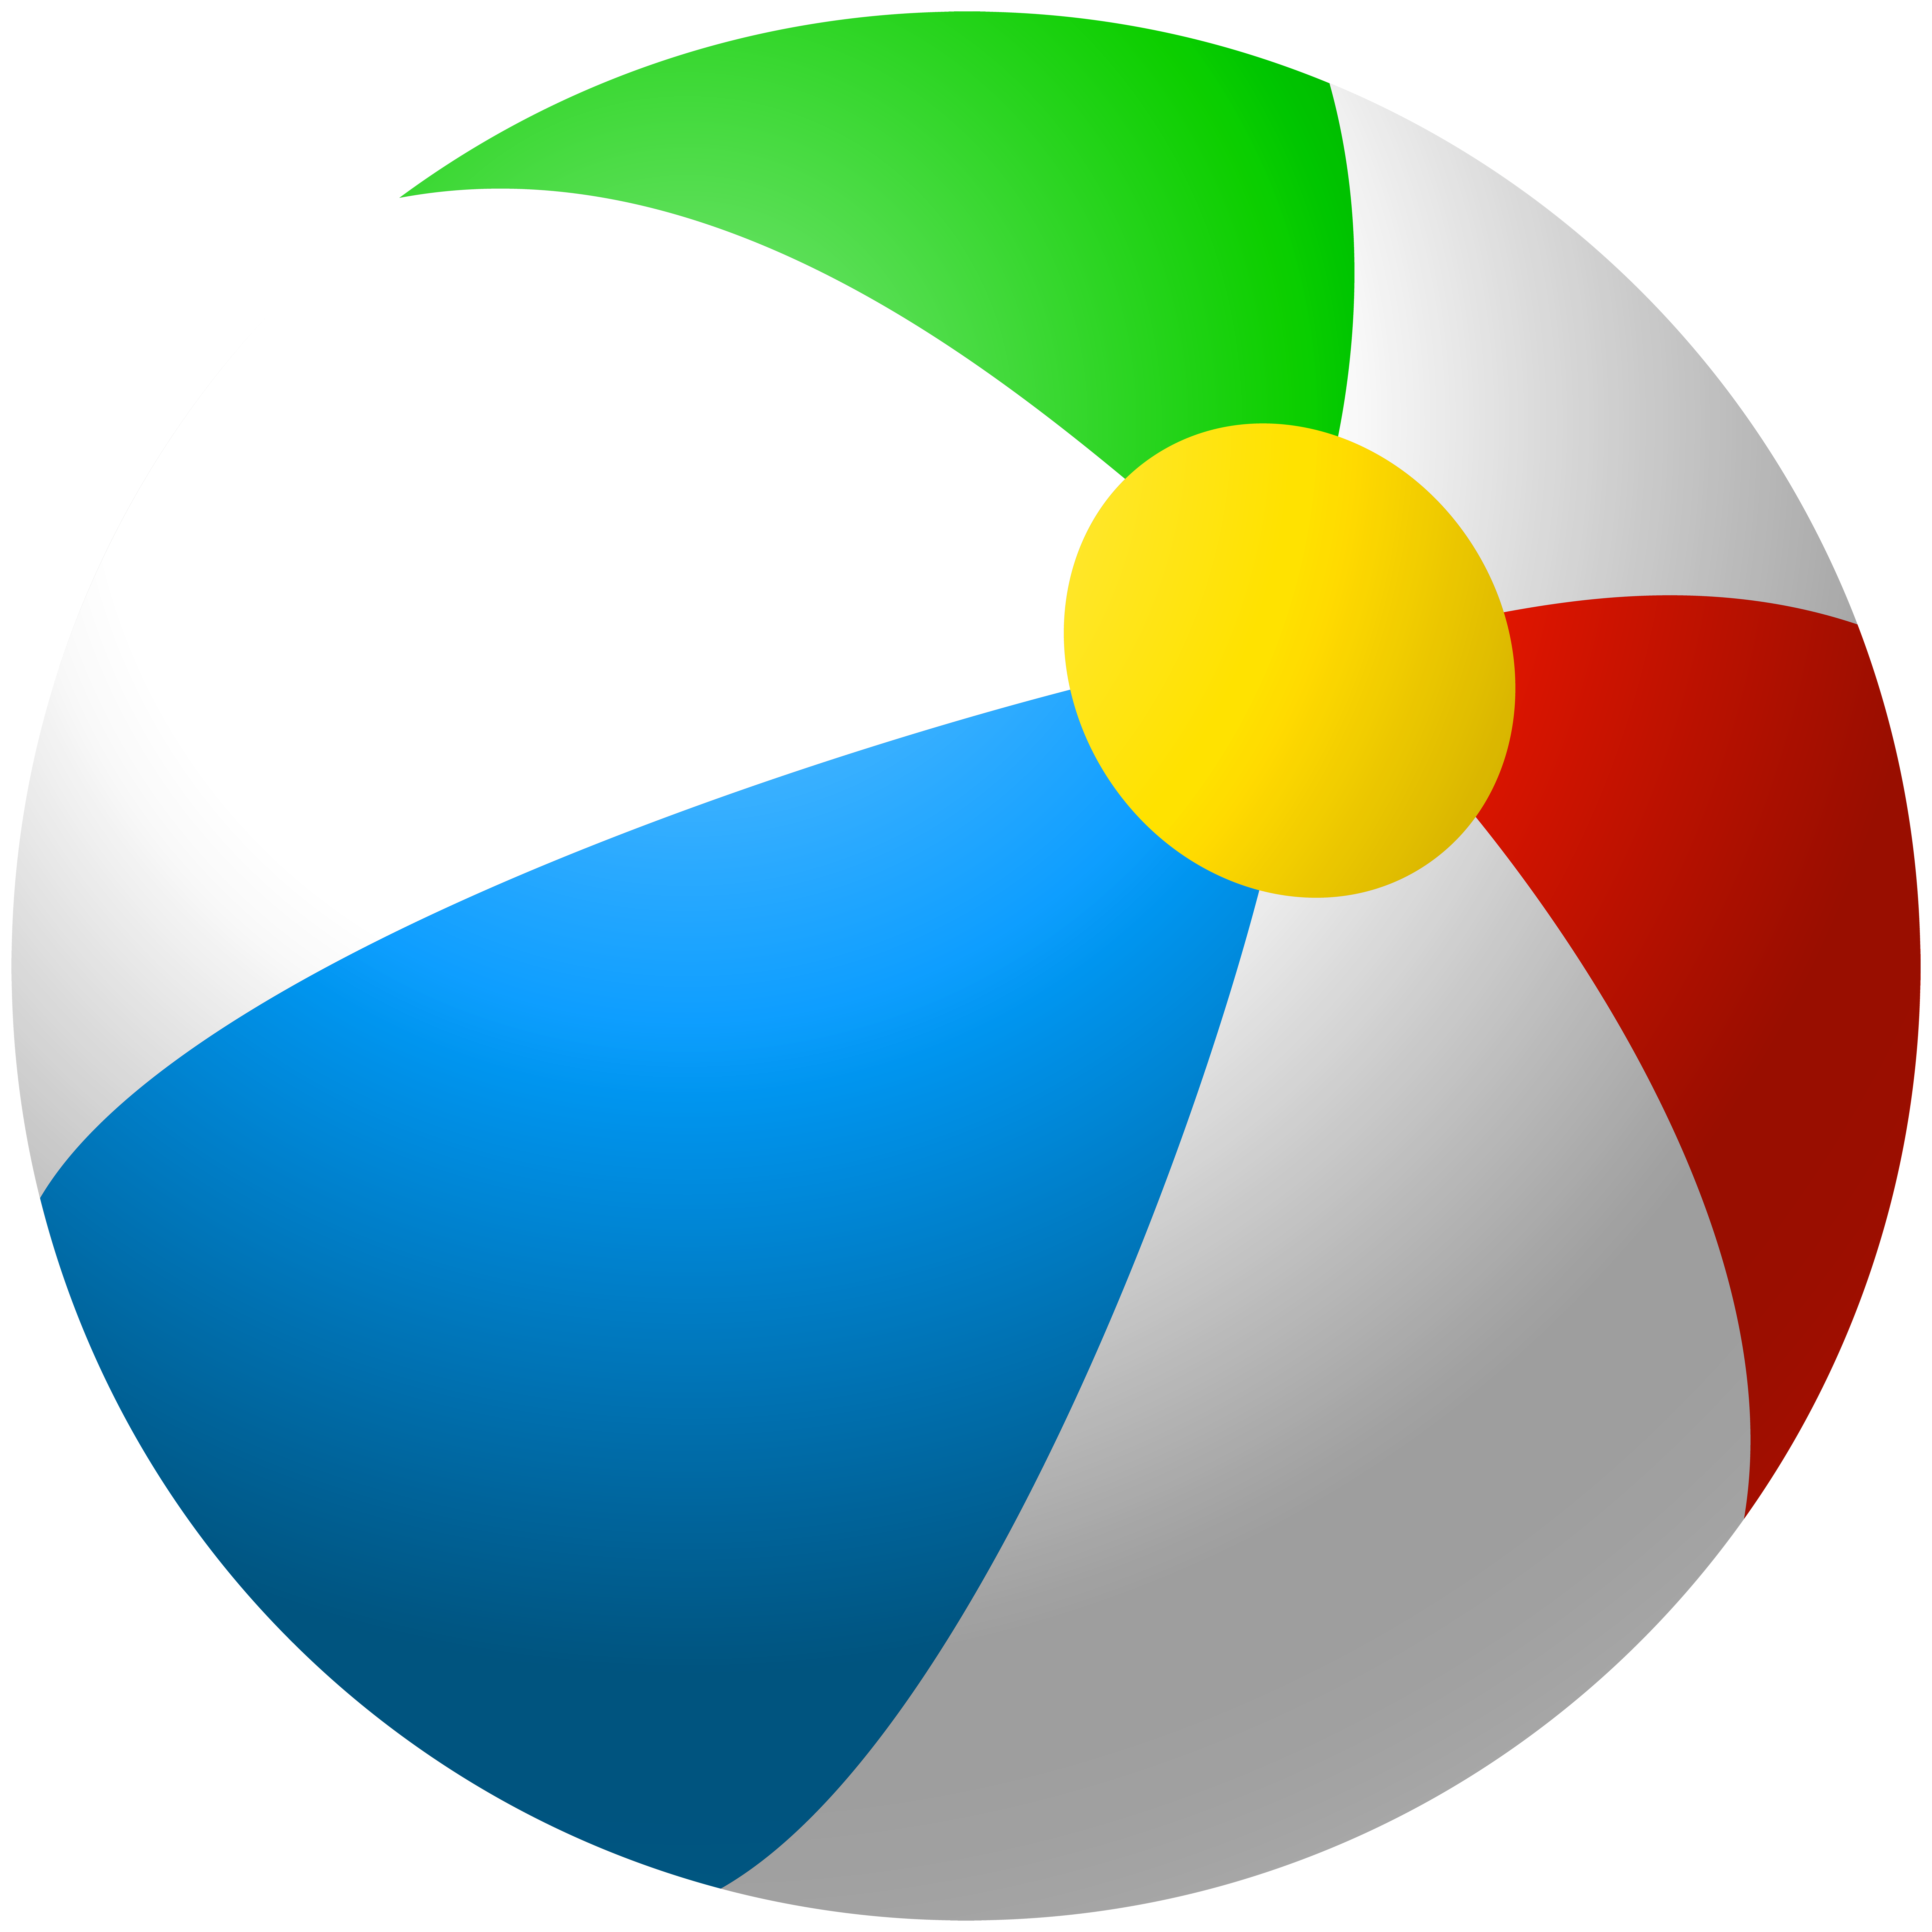 Beach ball clipart png. Inflatable clip art image